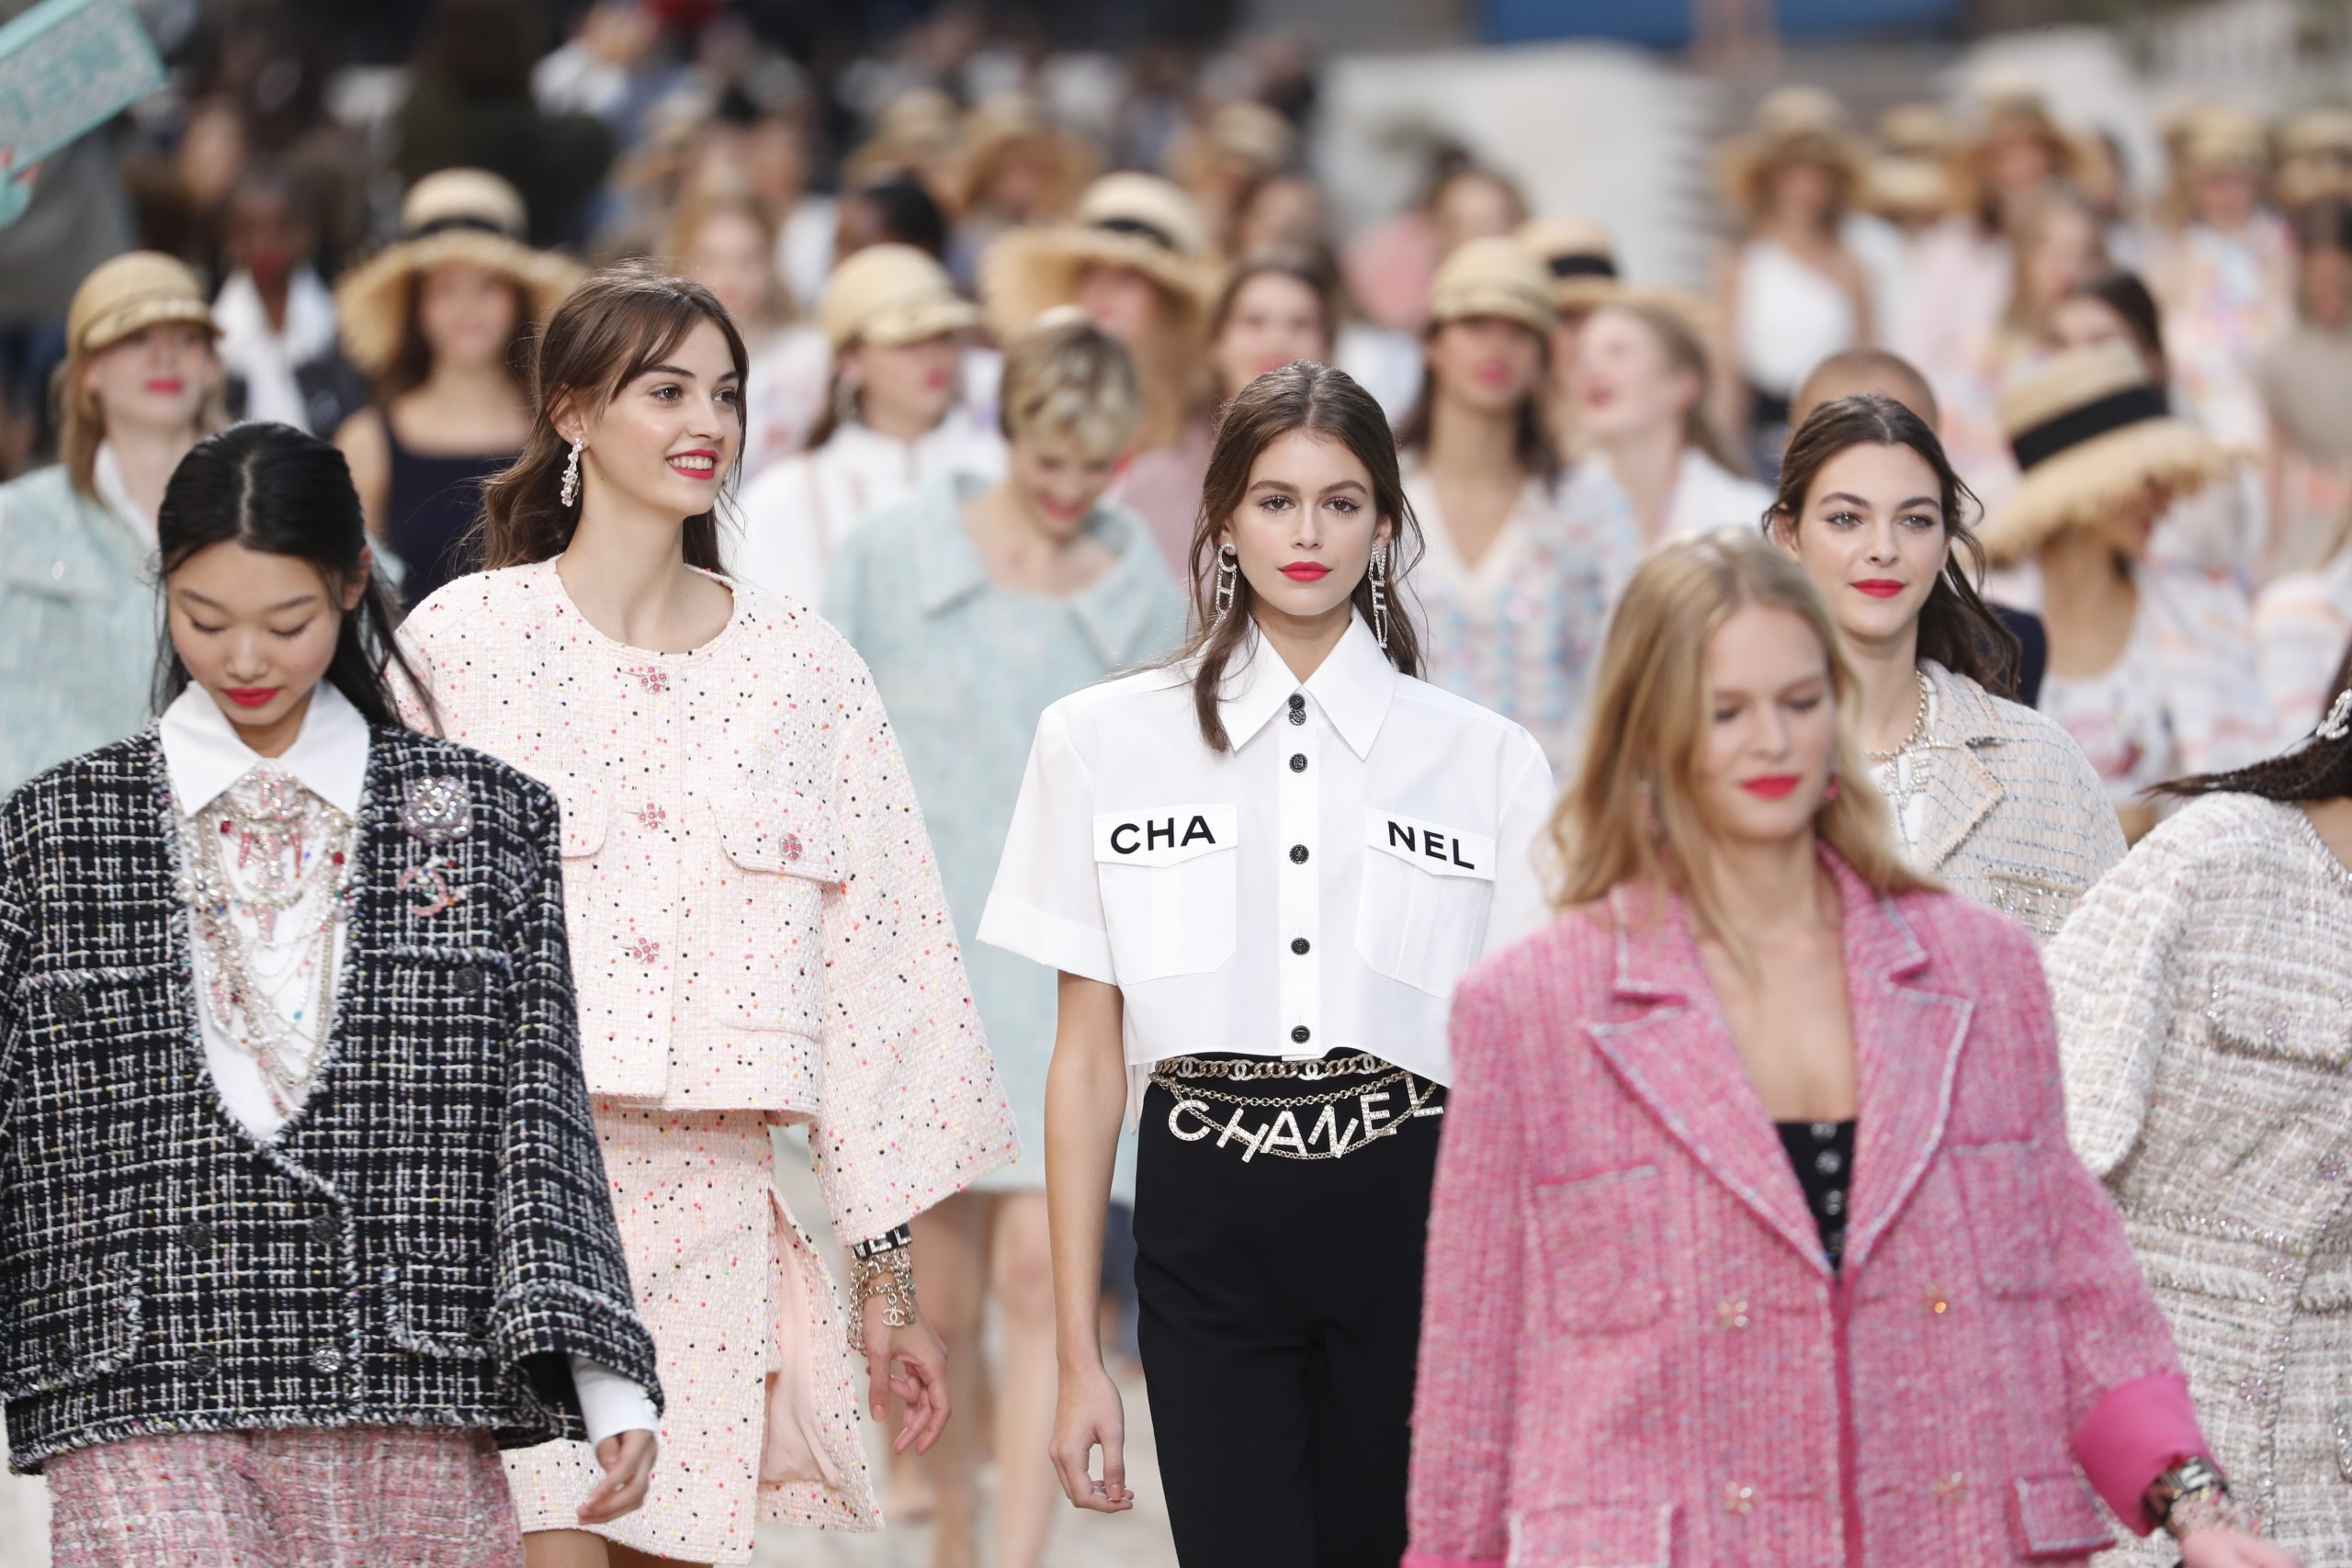 Paris Fashion Week 2020: How to Arrive in Paris in Style